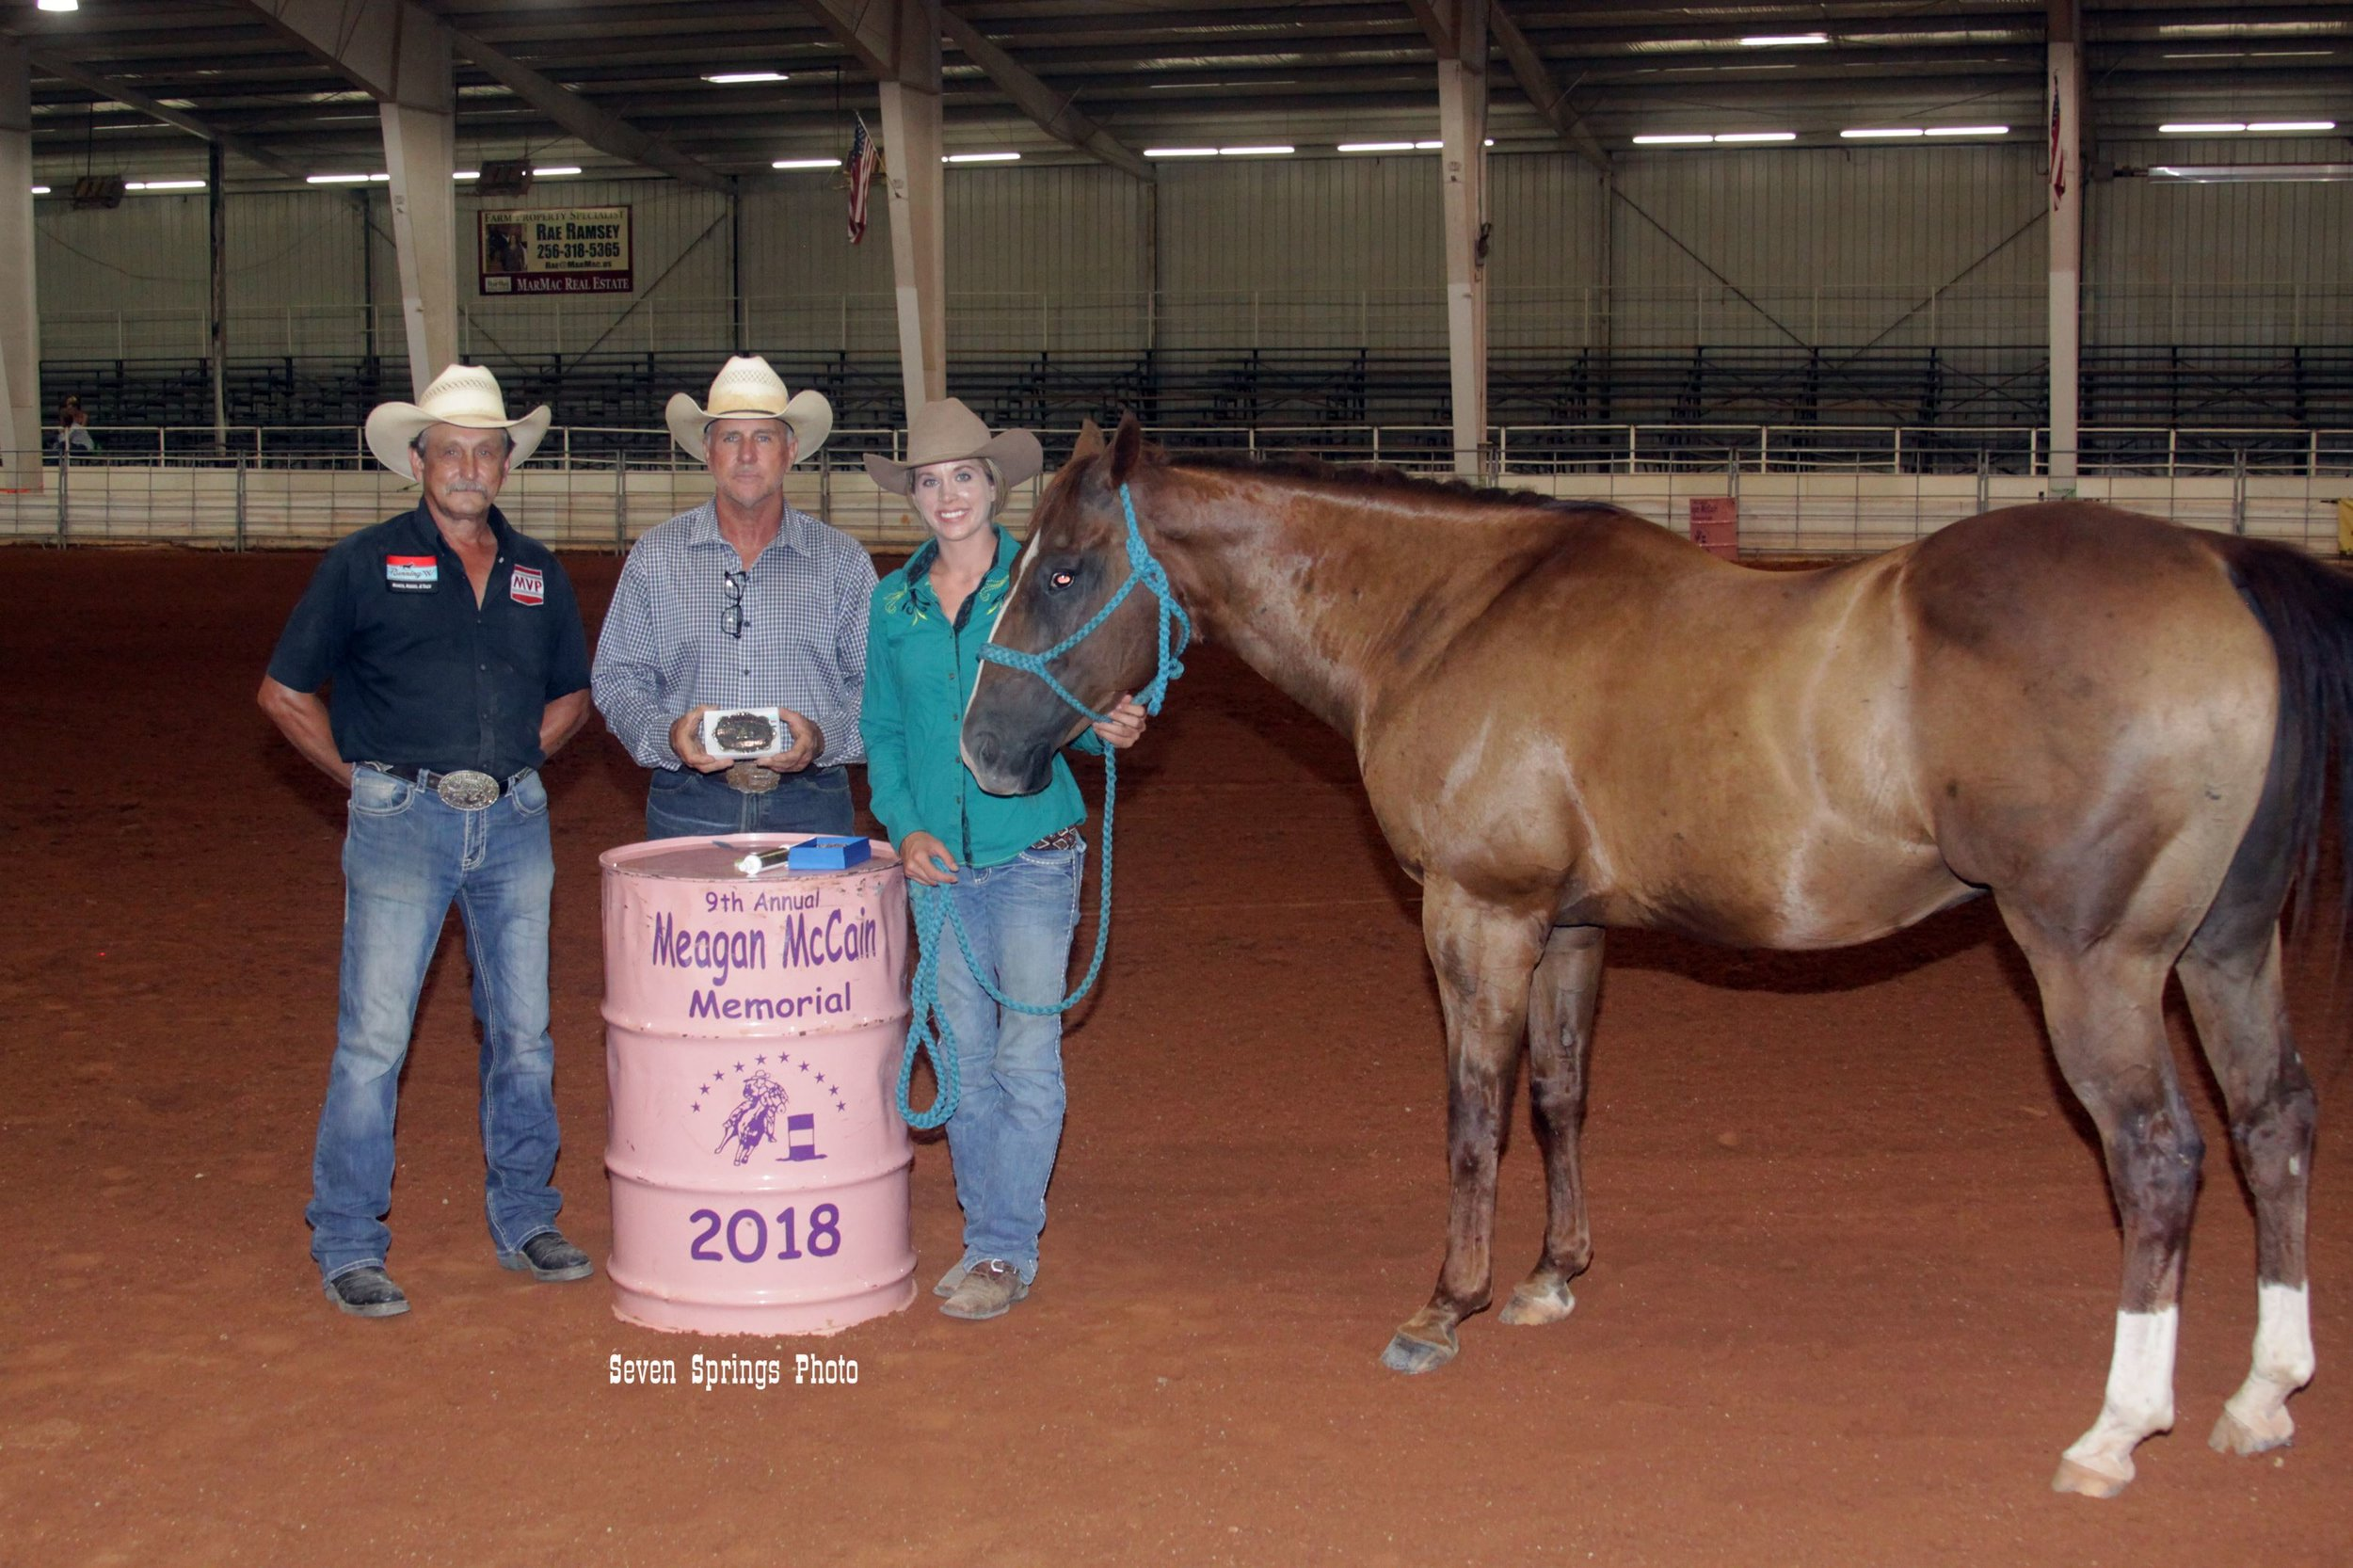 Fast Time award presented to Alexandria Skipworth in memory of Tracy Marlin